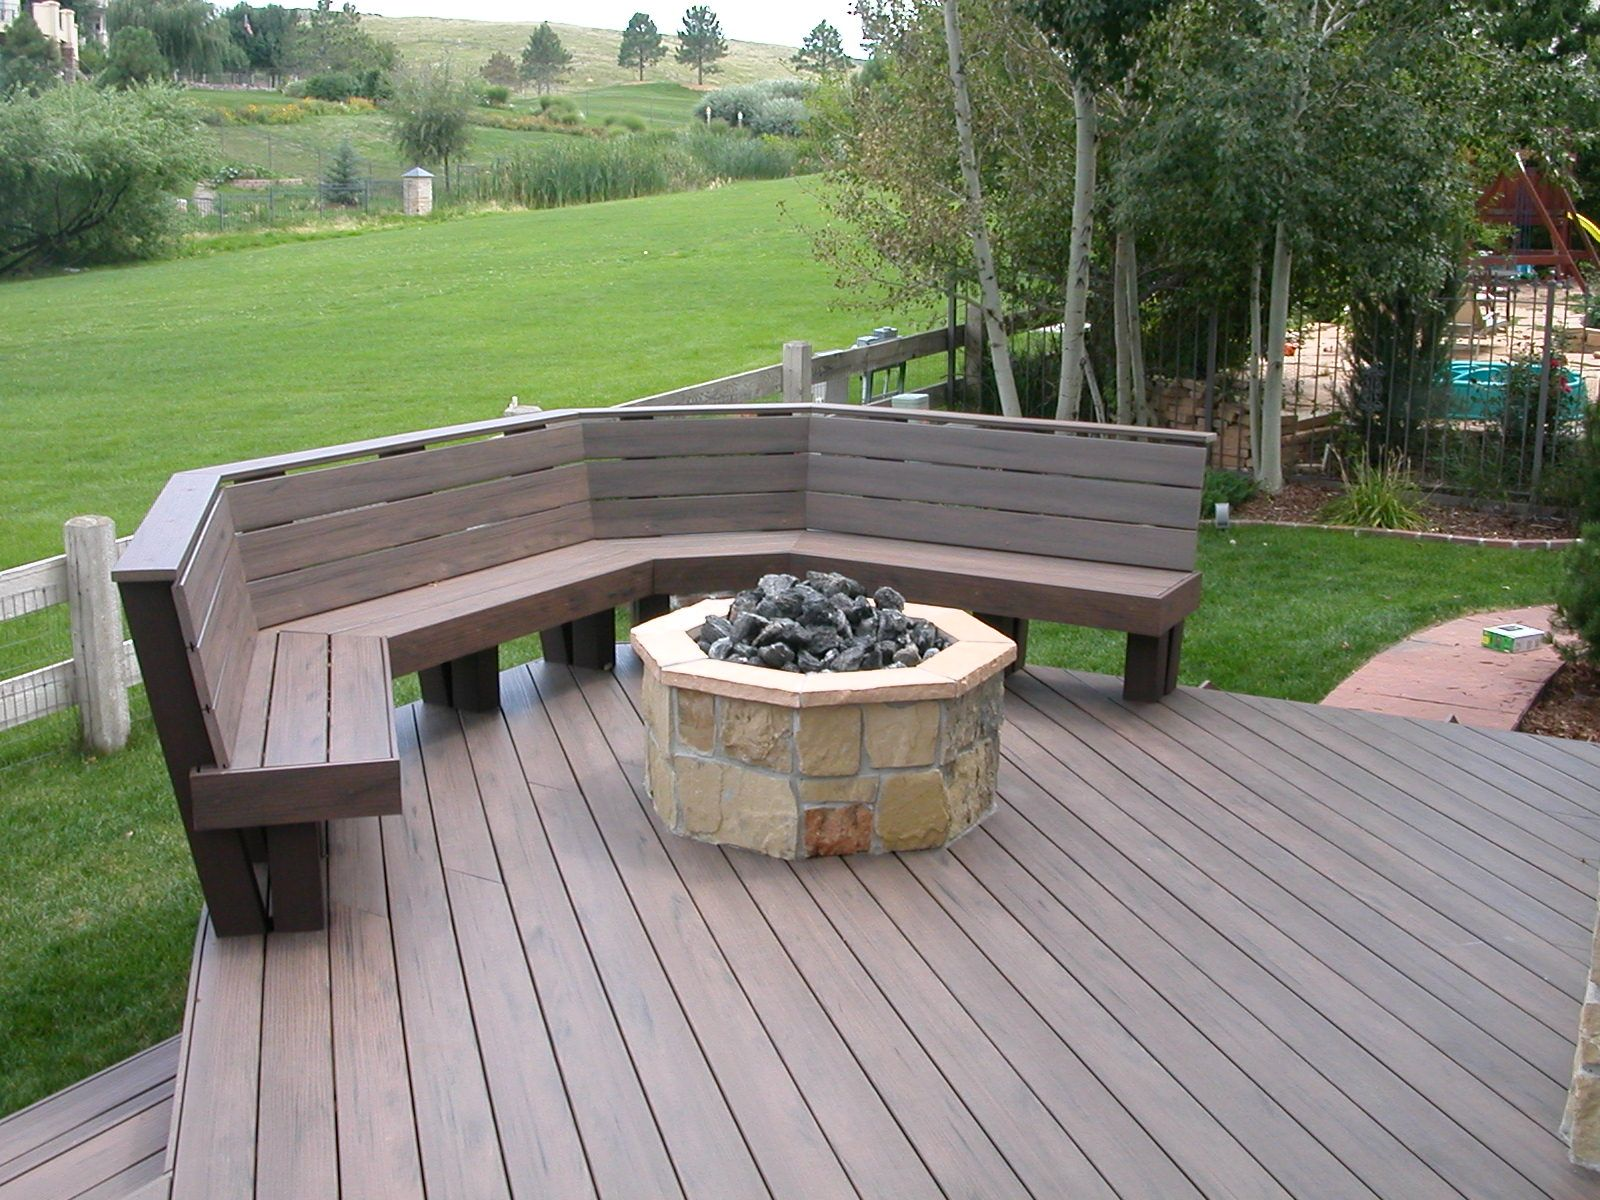 Trex Deck With Benches & Fire Pit Halliday Built Decks